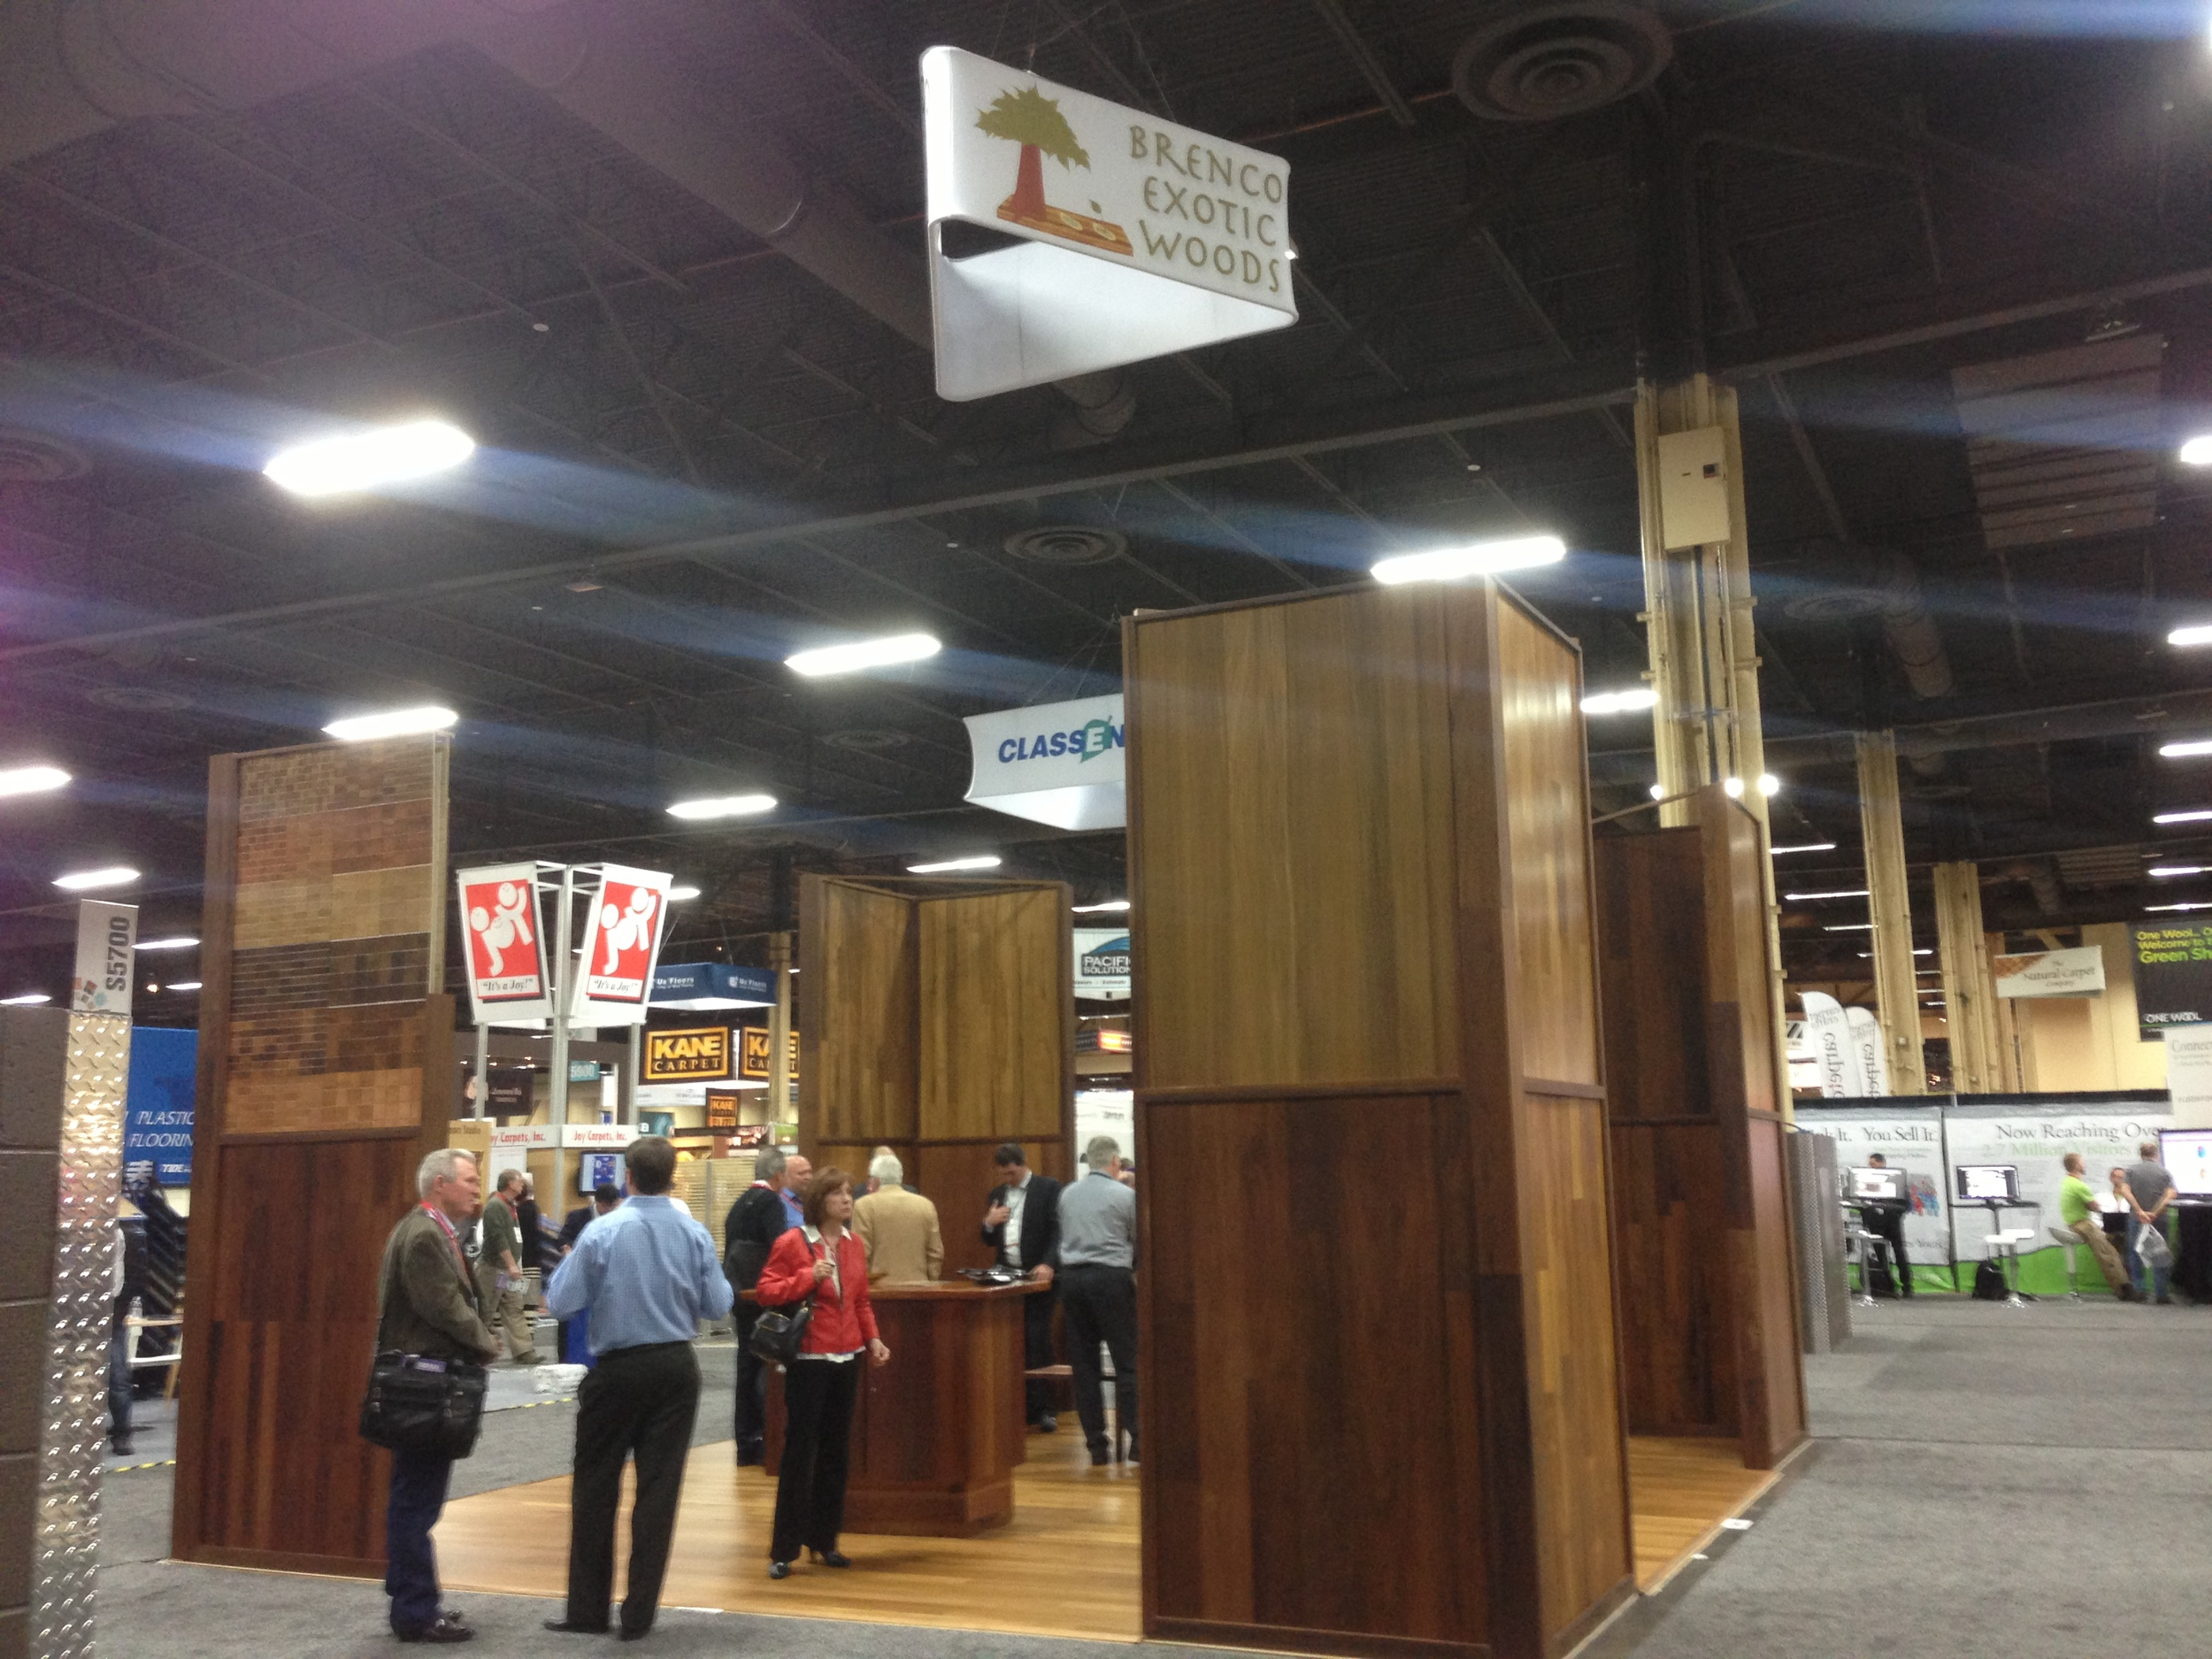 Brenco Exotic Woods Booth at Surfaces 2014 Las Vegas